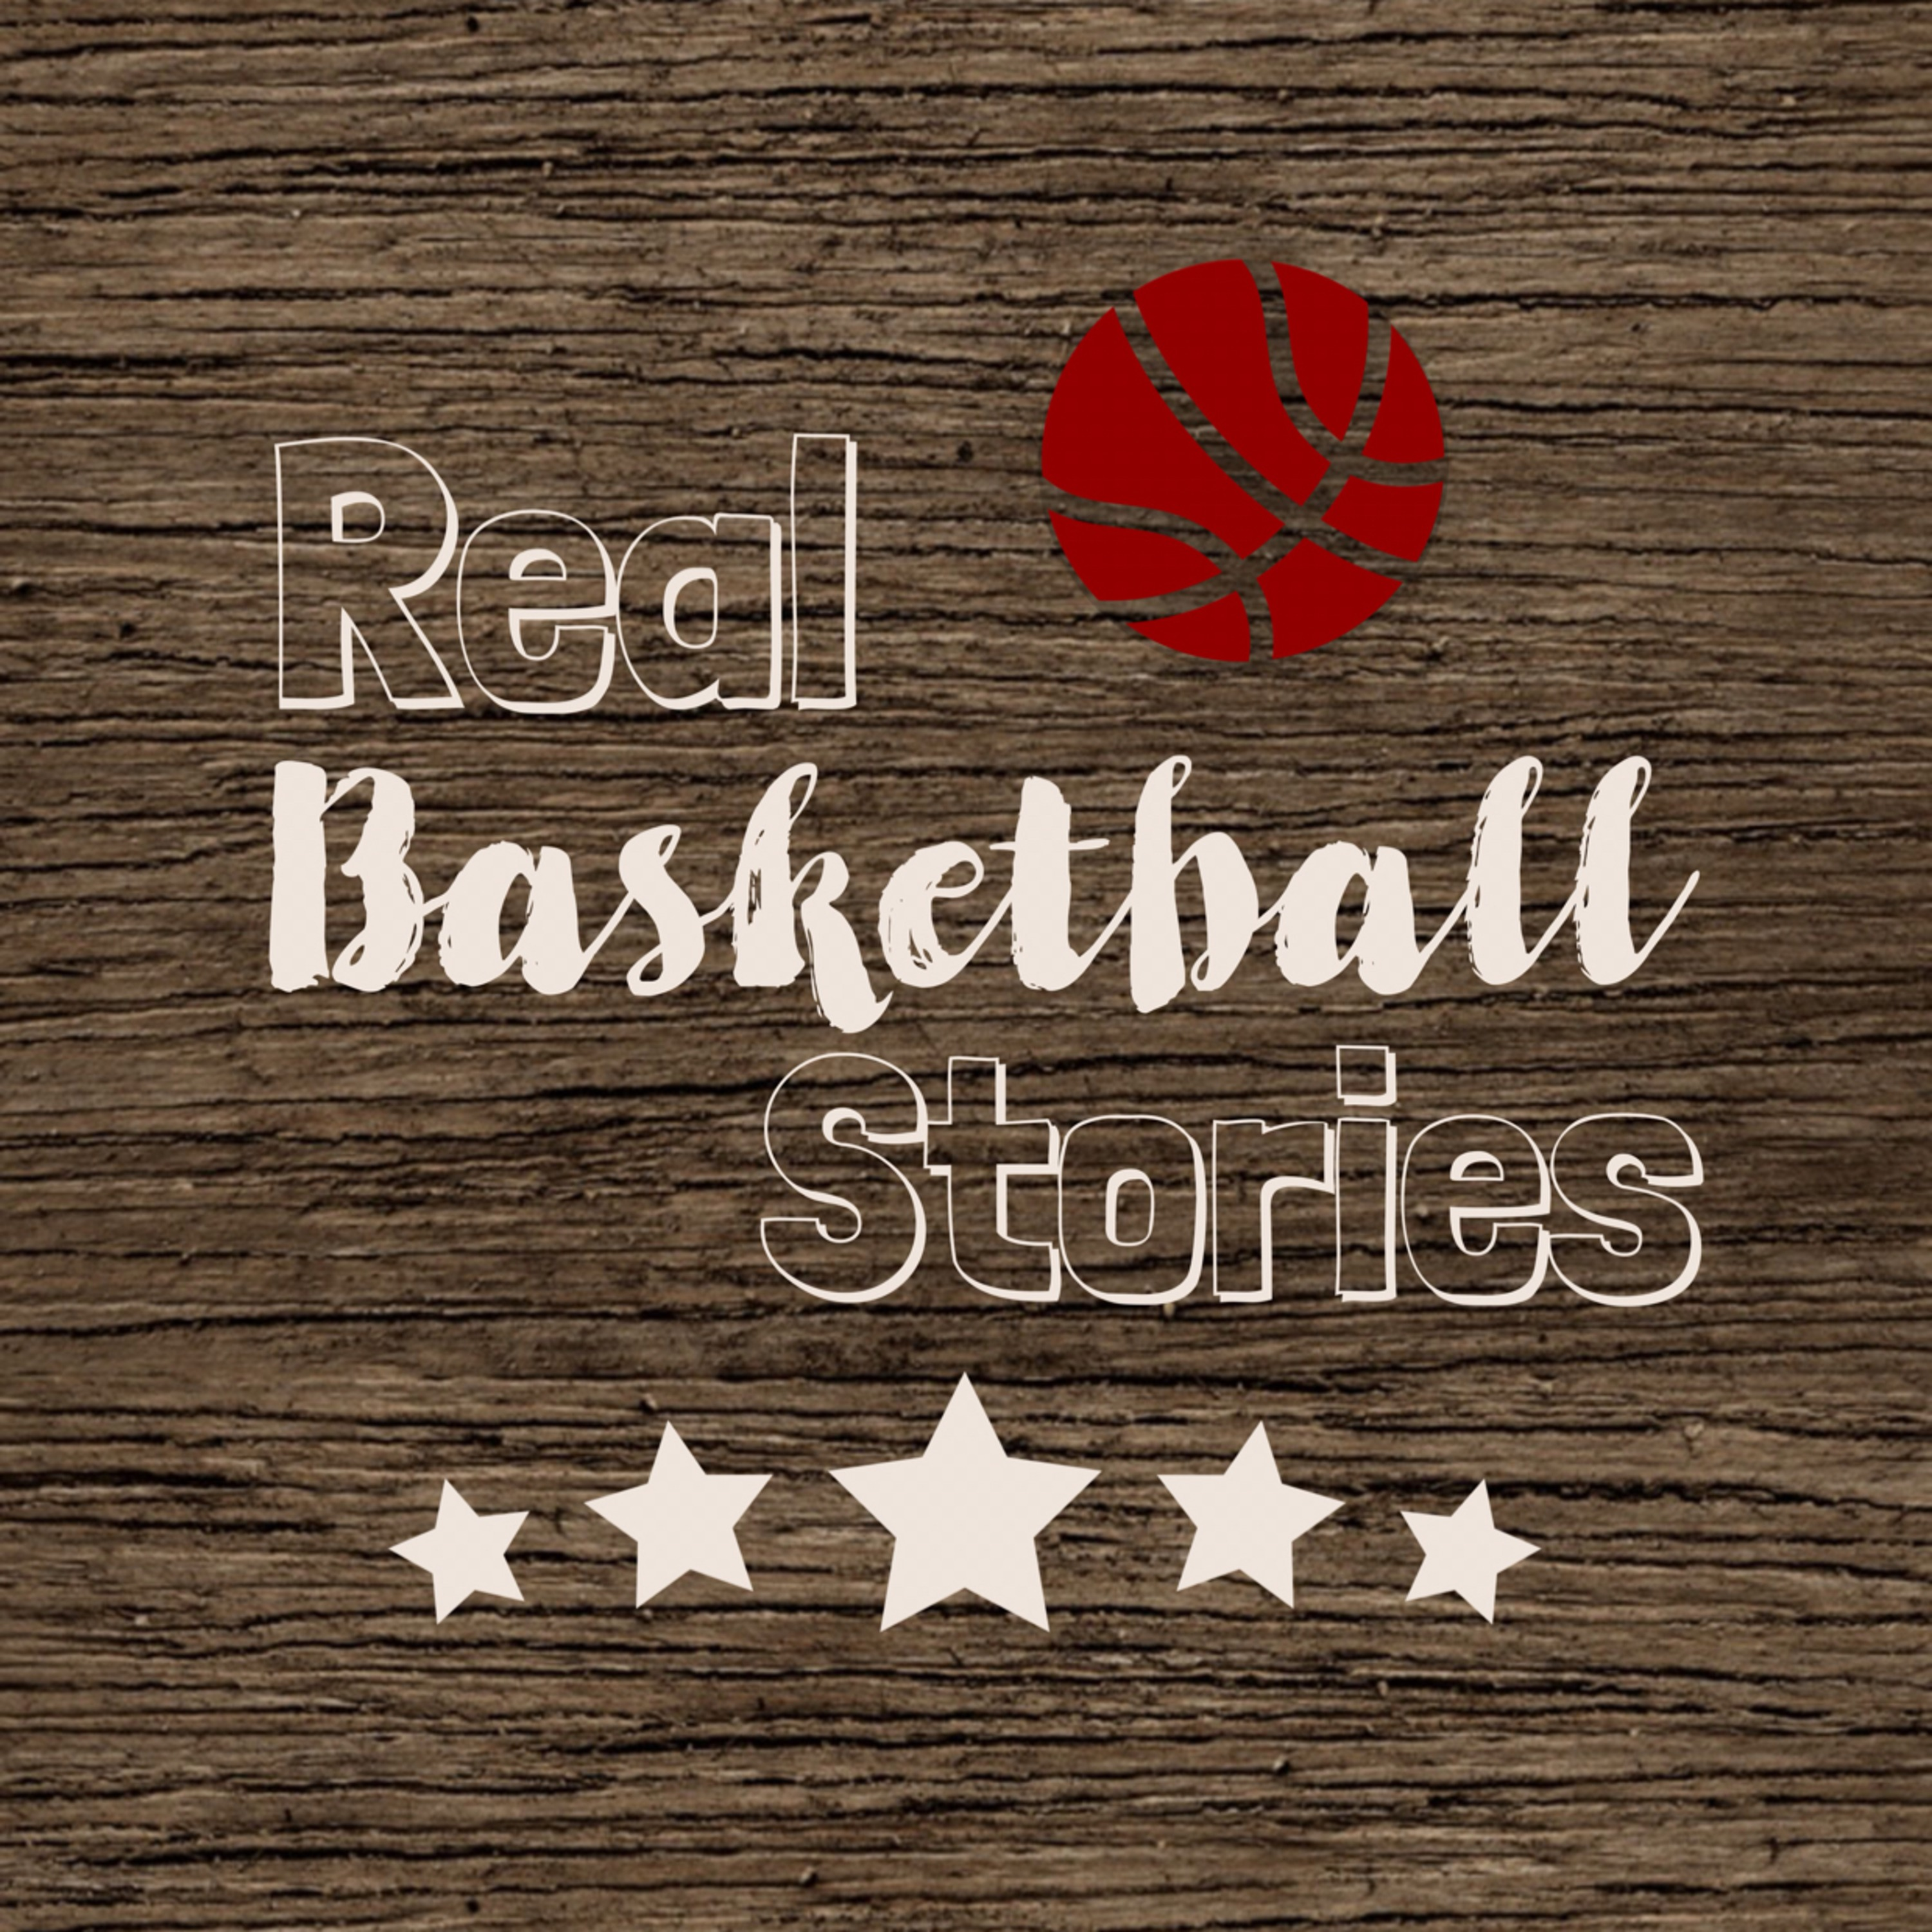 Real Basketball Stories: Episode 1